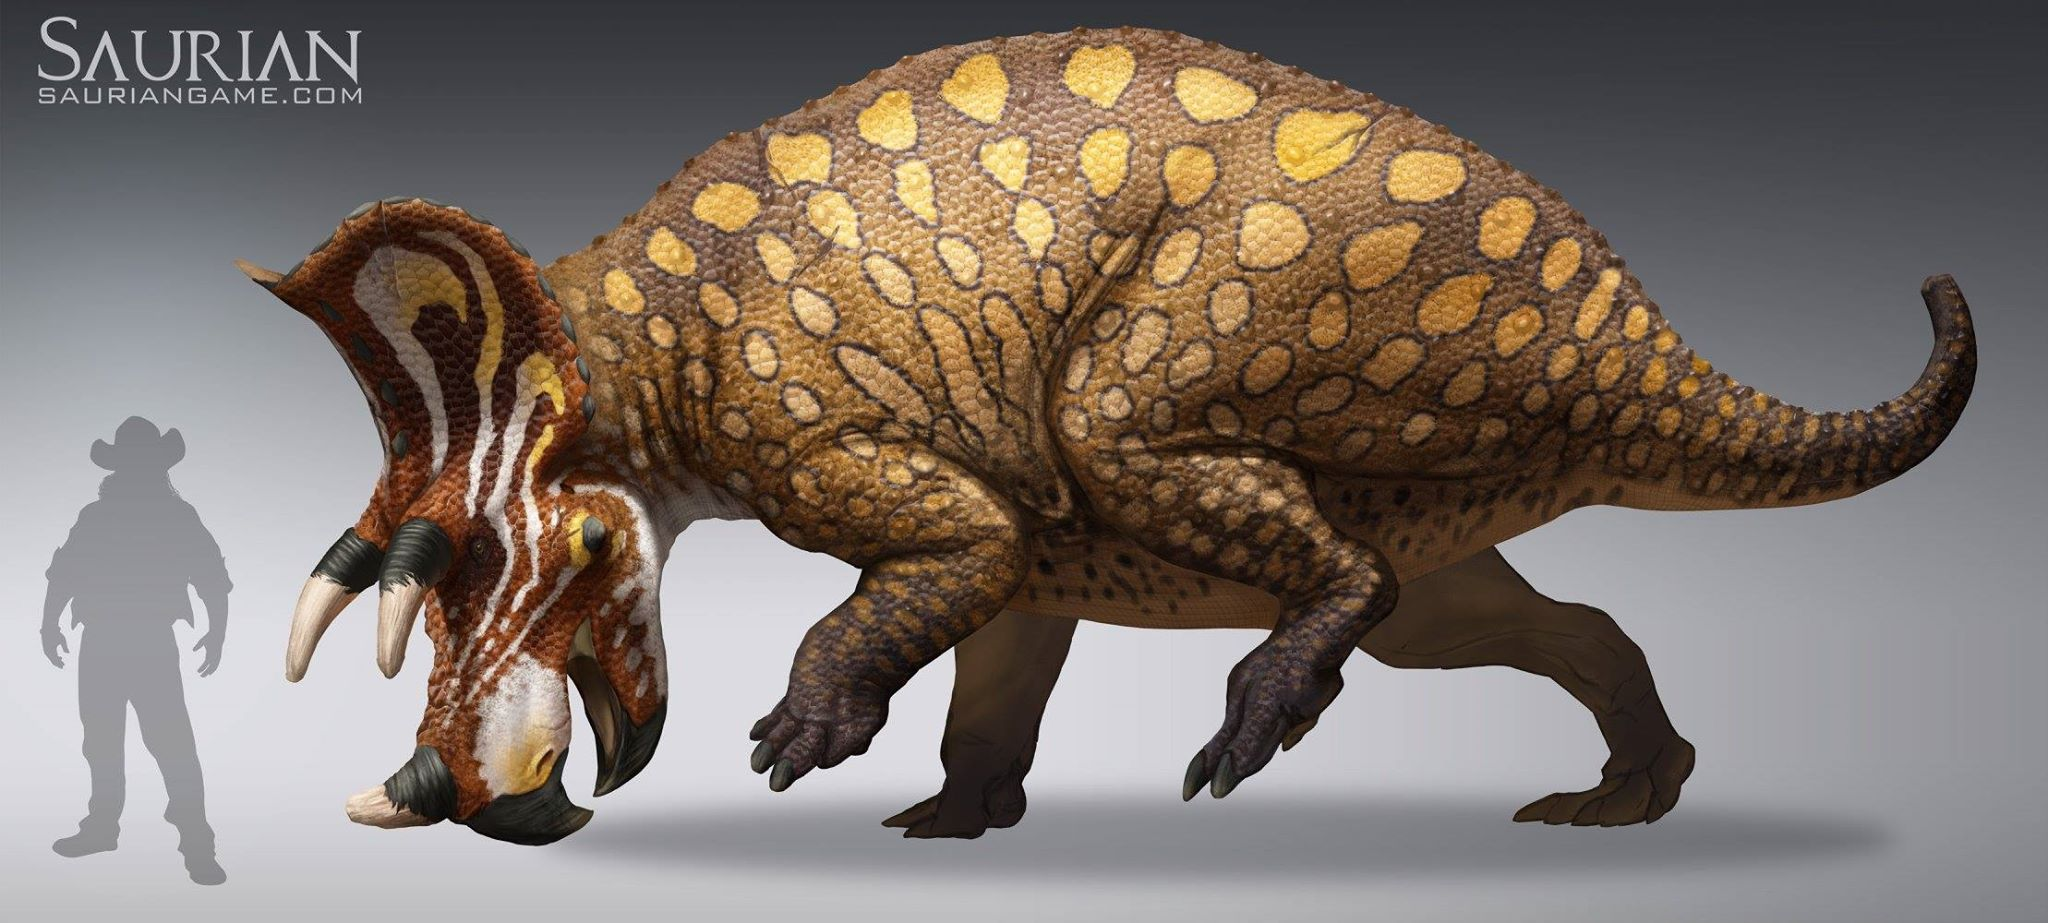 Grown Triceratops compared to human